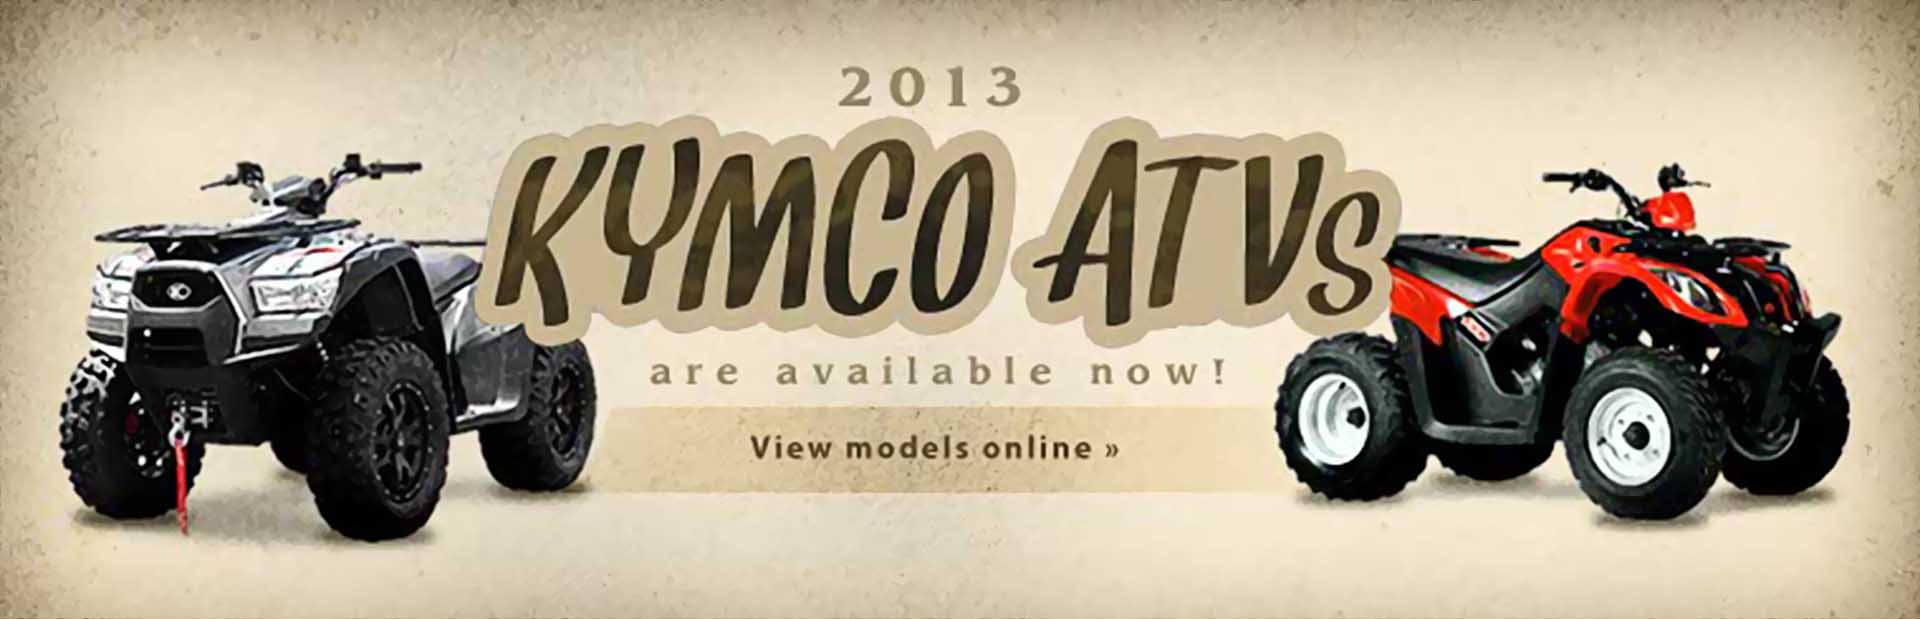 Click here to view the 2013 KYMCO ATVs.